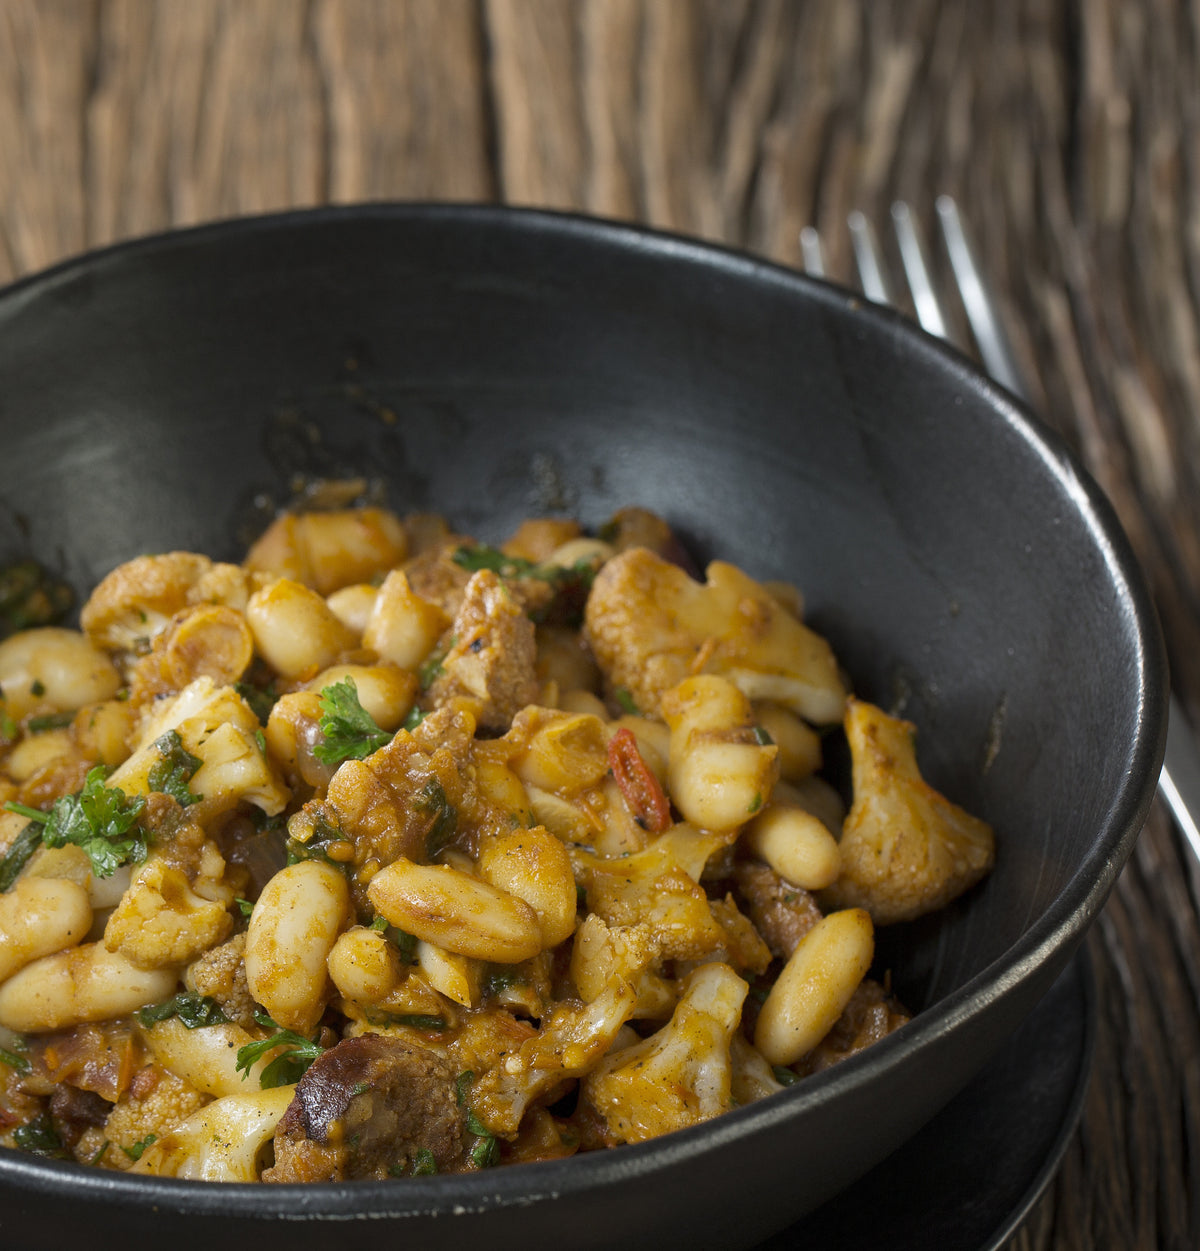 Chicken Cassoulet Assembly Instructions